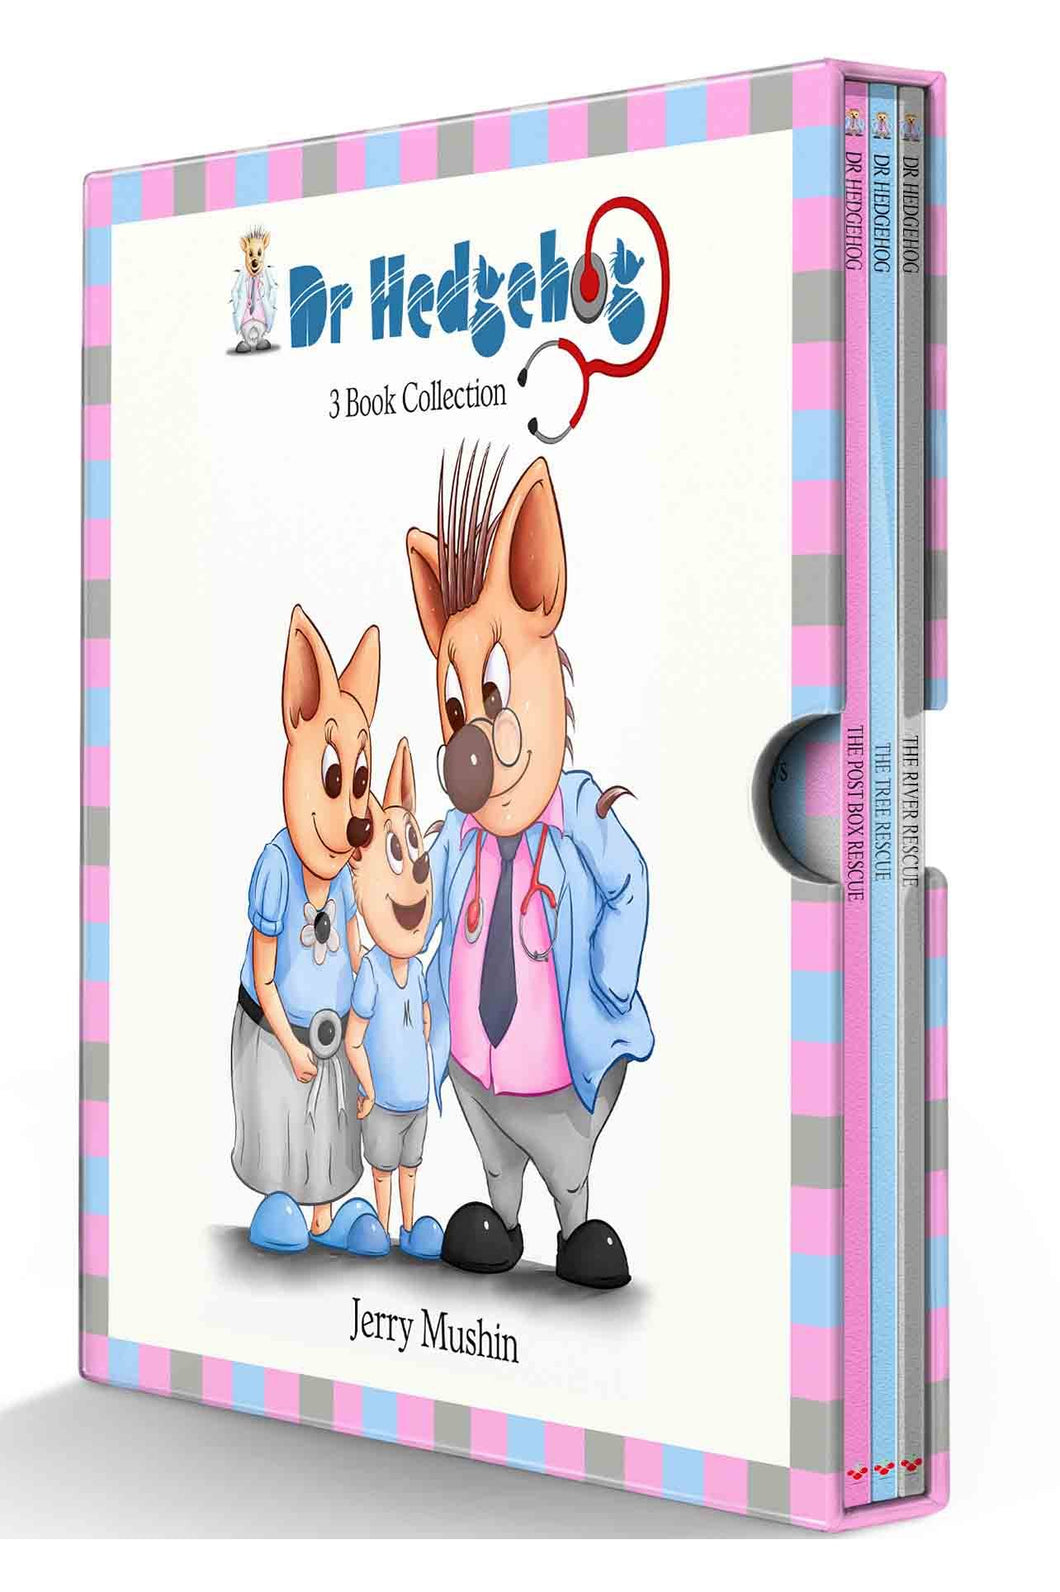 Dr Hedgehog 3 Books Children Collection Paperback Box Set By Jery Mushin